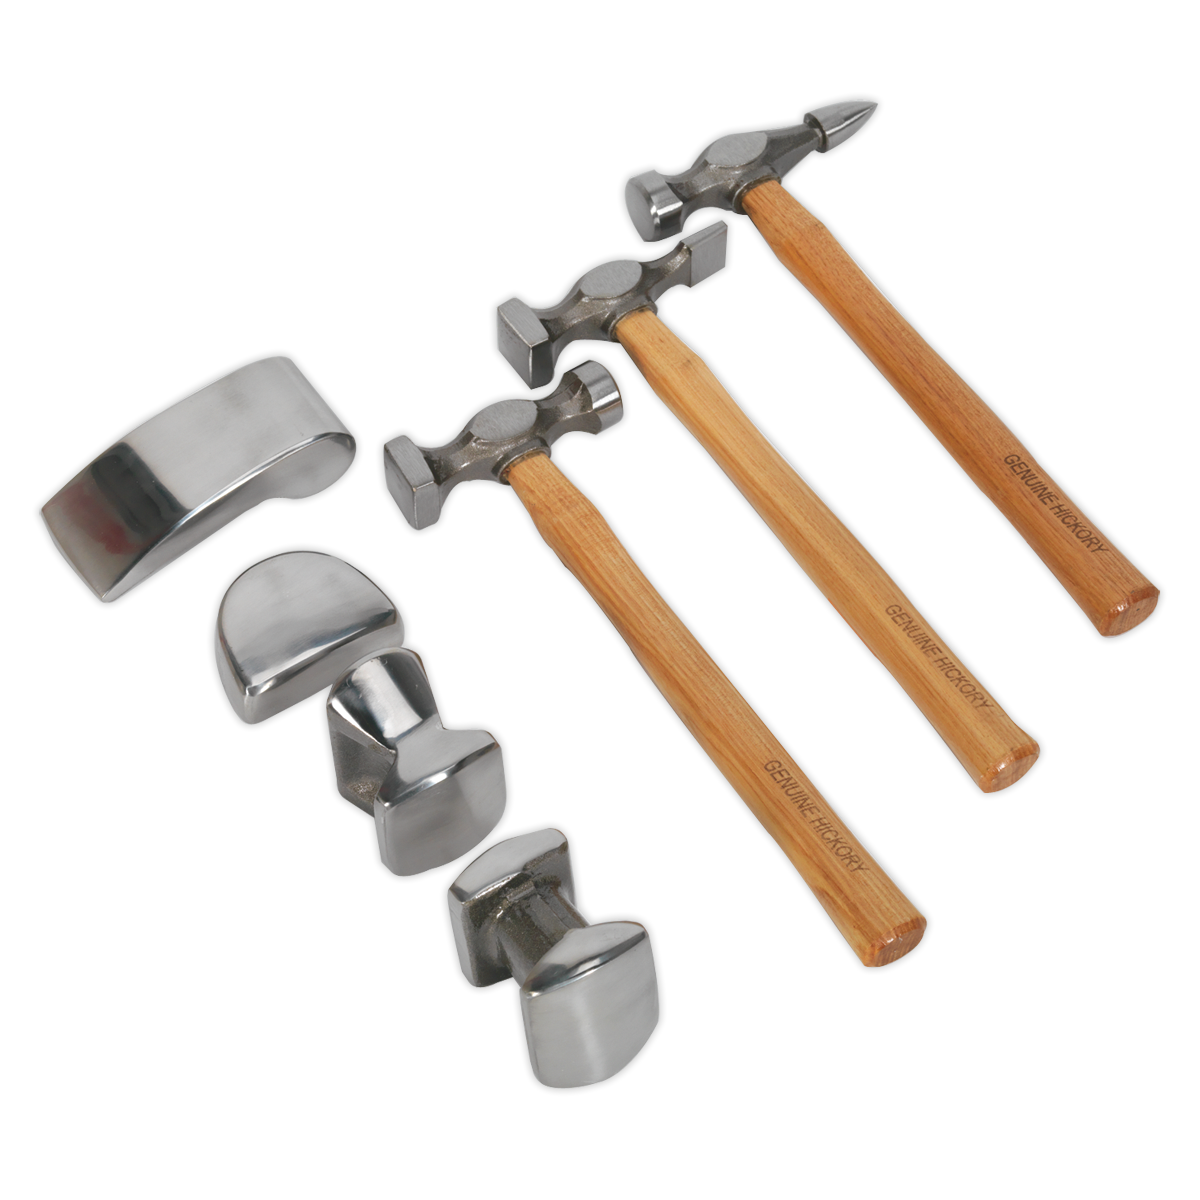 Sealey CB507 - Panel Beating Set 7pc Drop-Forged Hickory Shafts